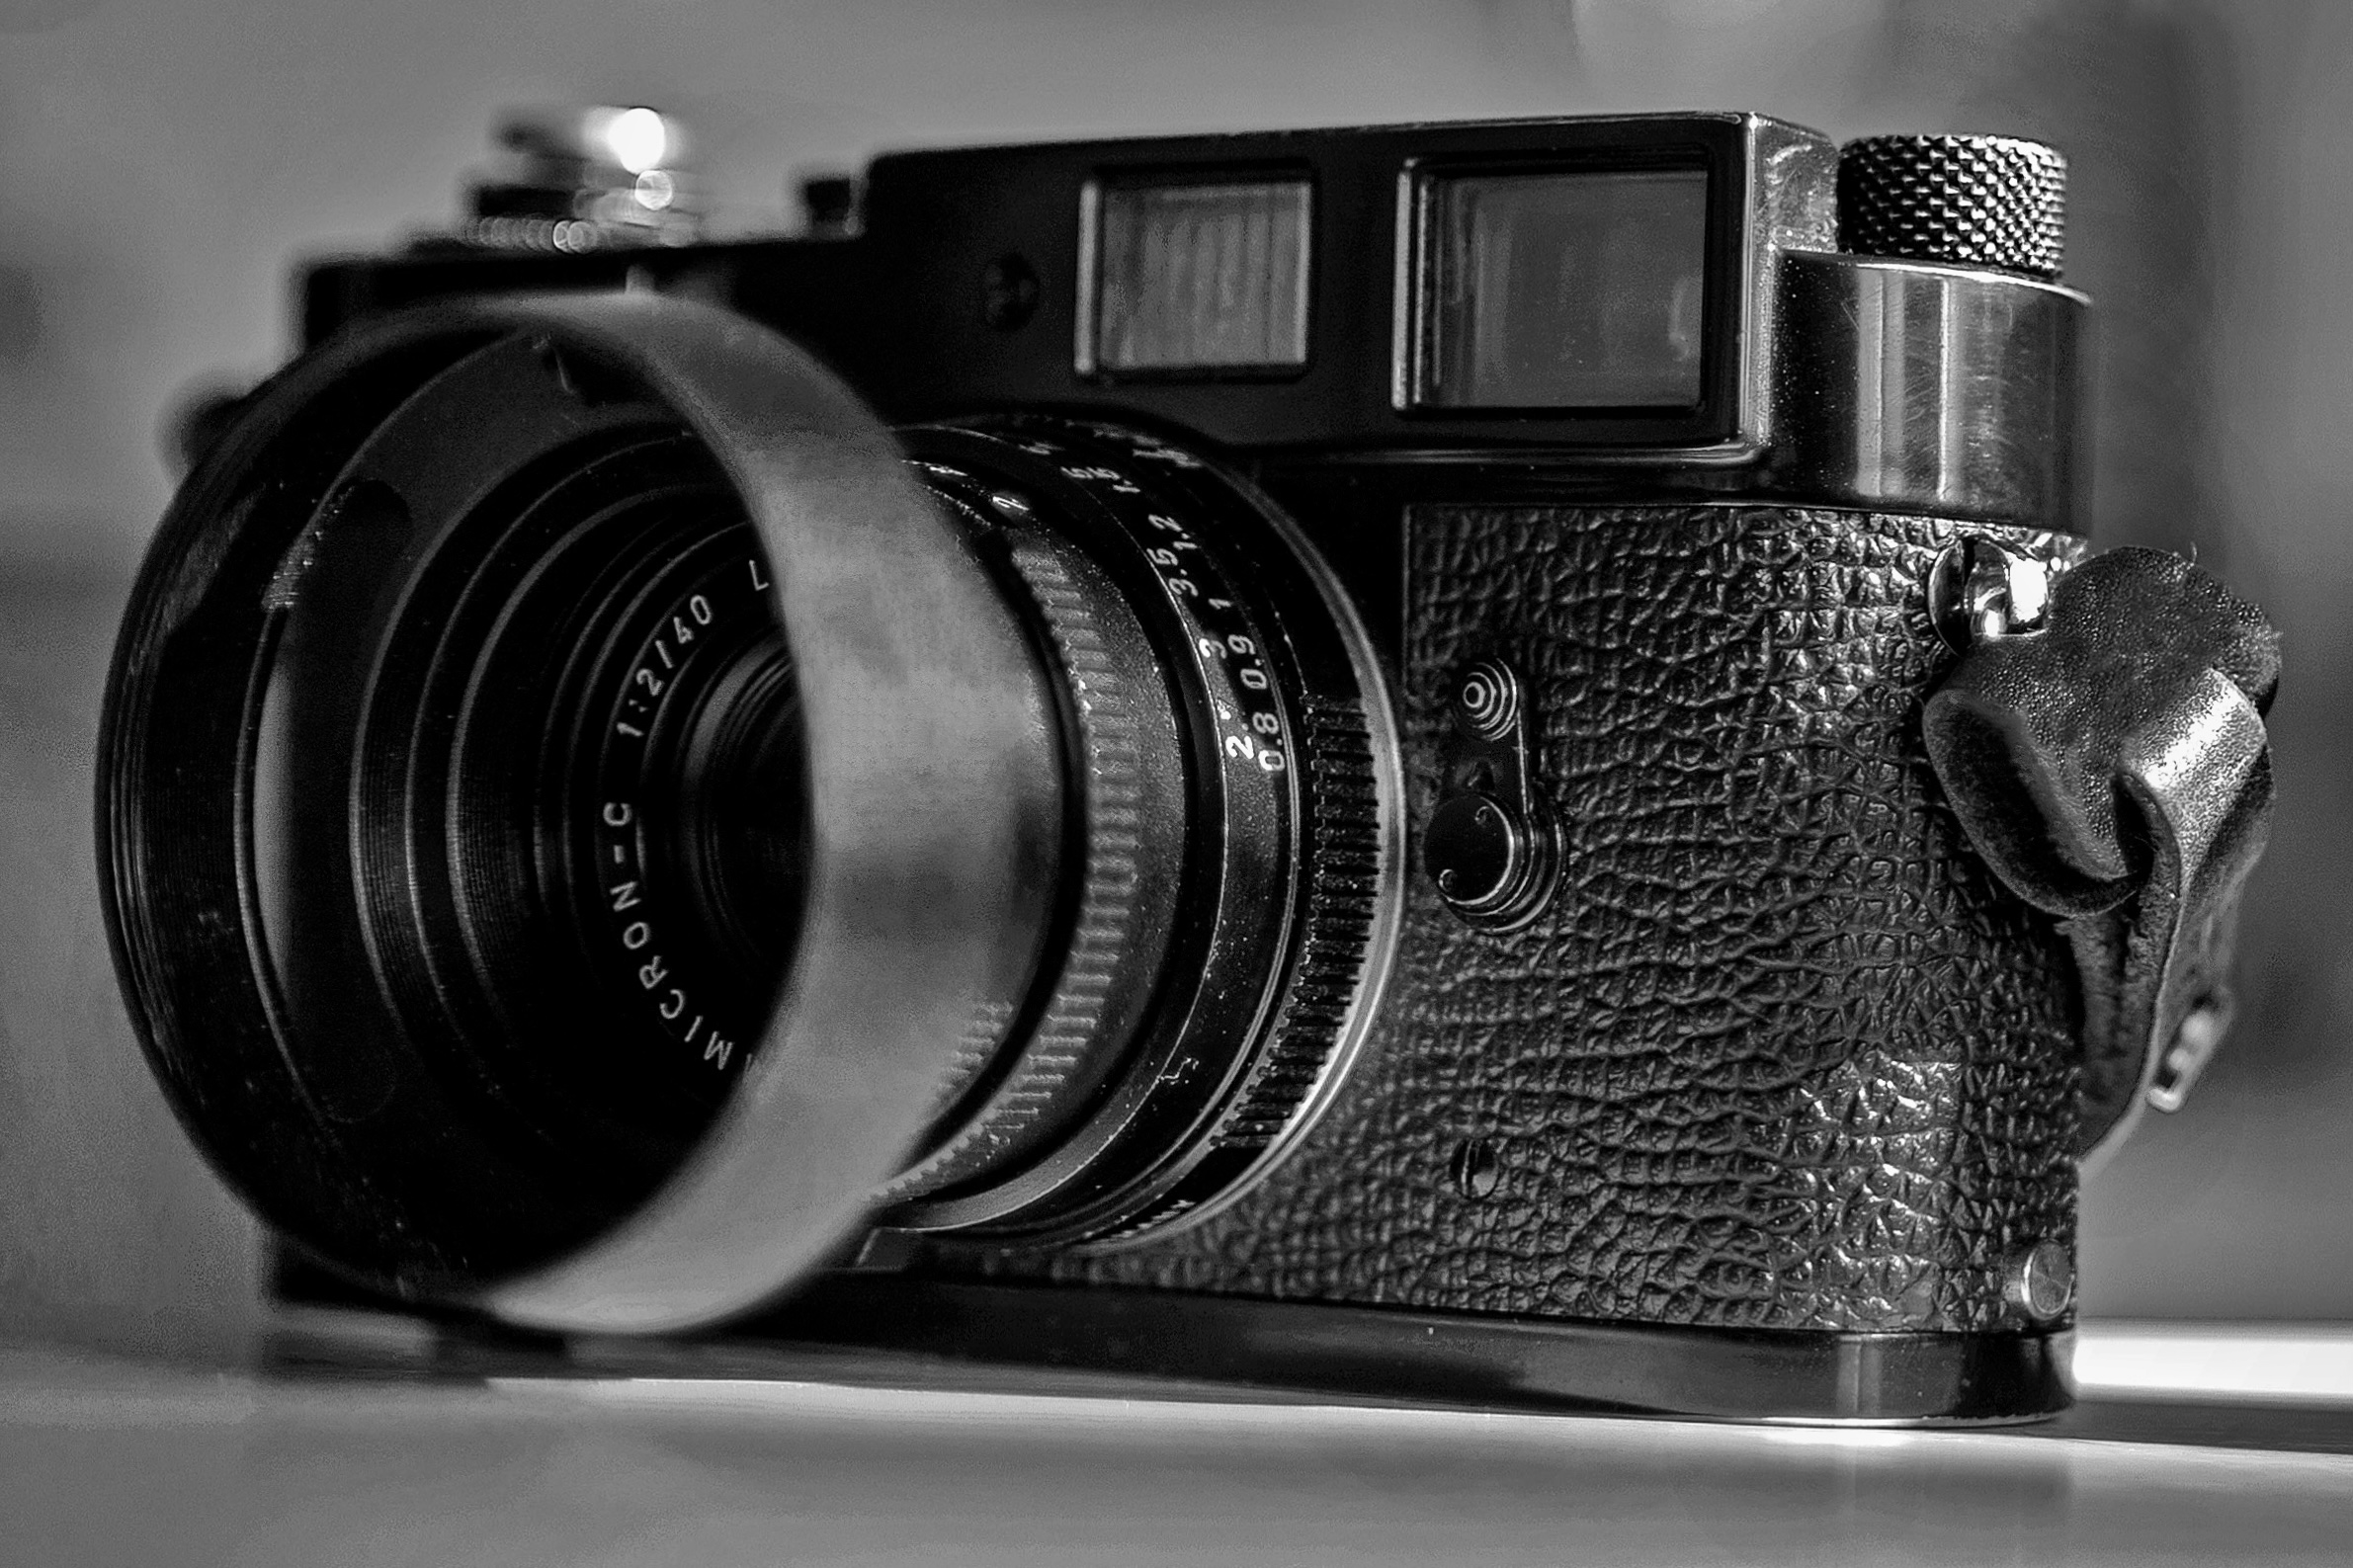 Leica M2 with 40mm Summicron f2